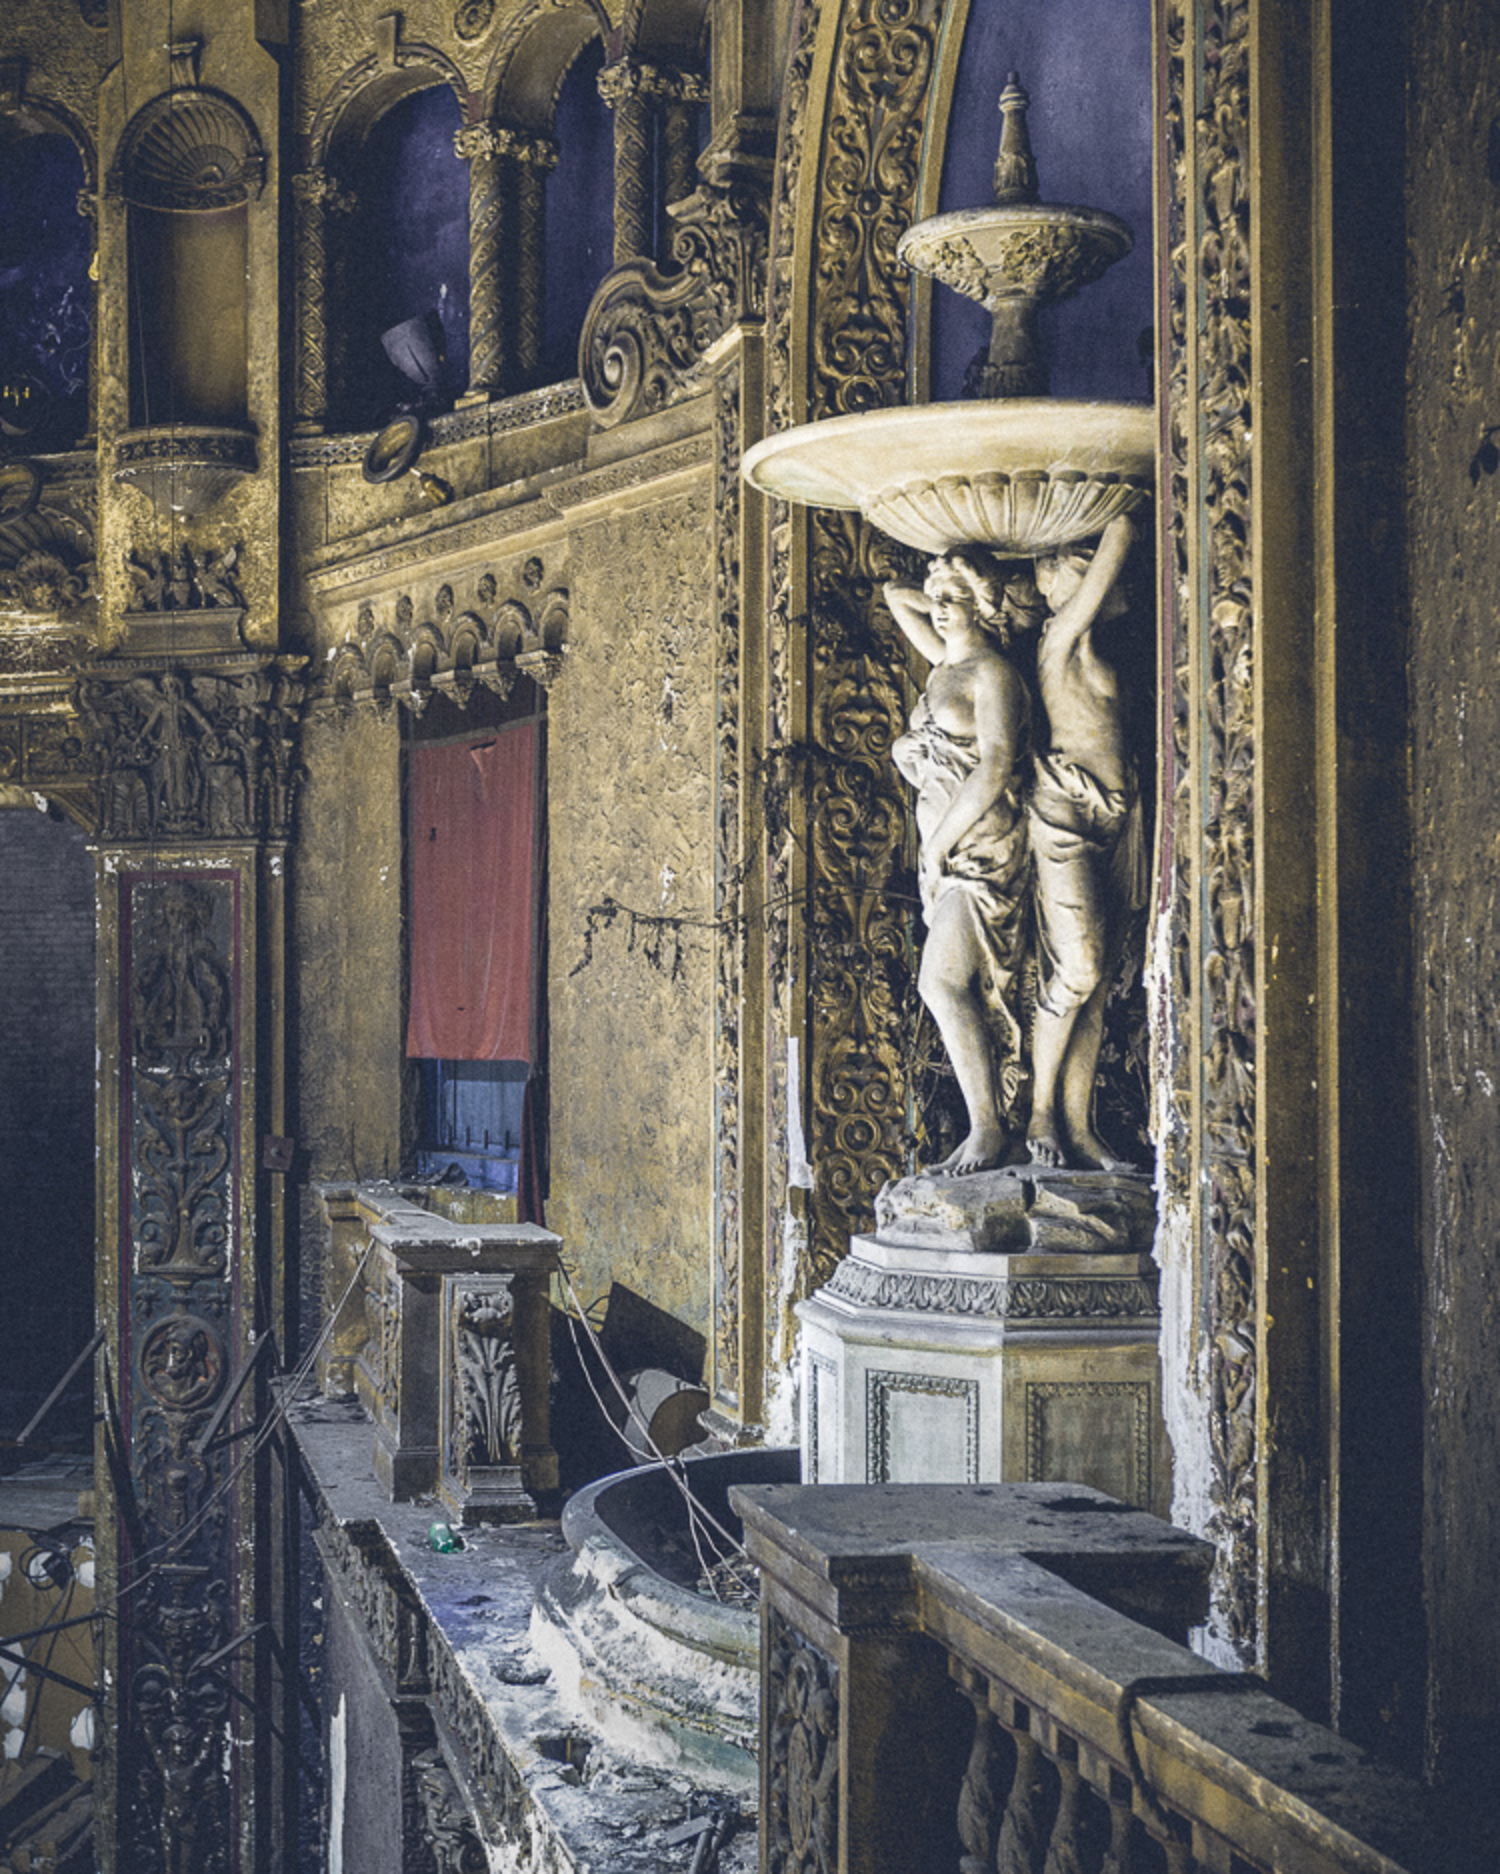 This classical fountain was the most striking feature of the theater's design.